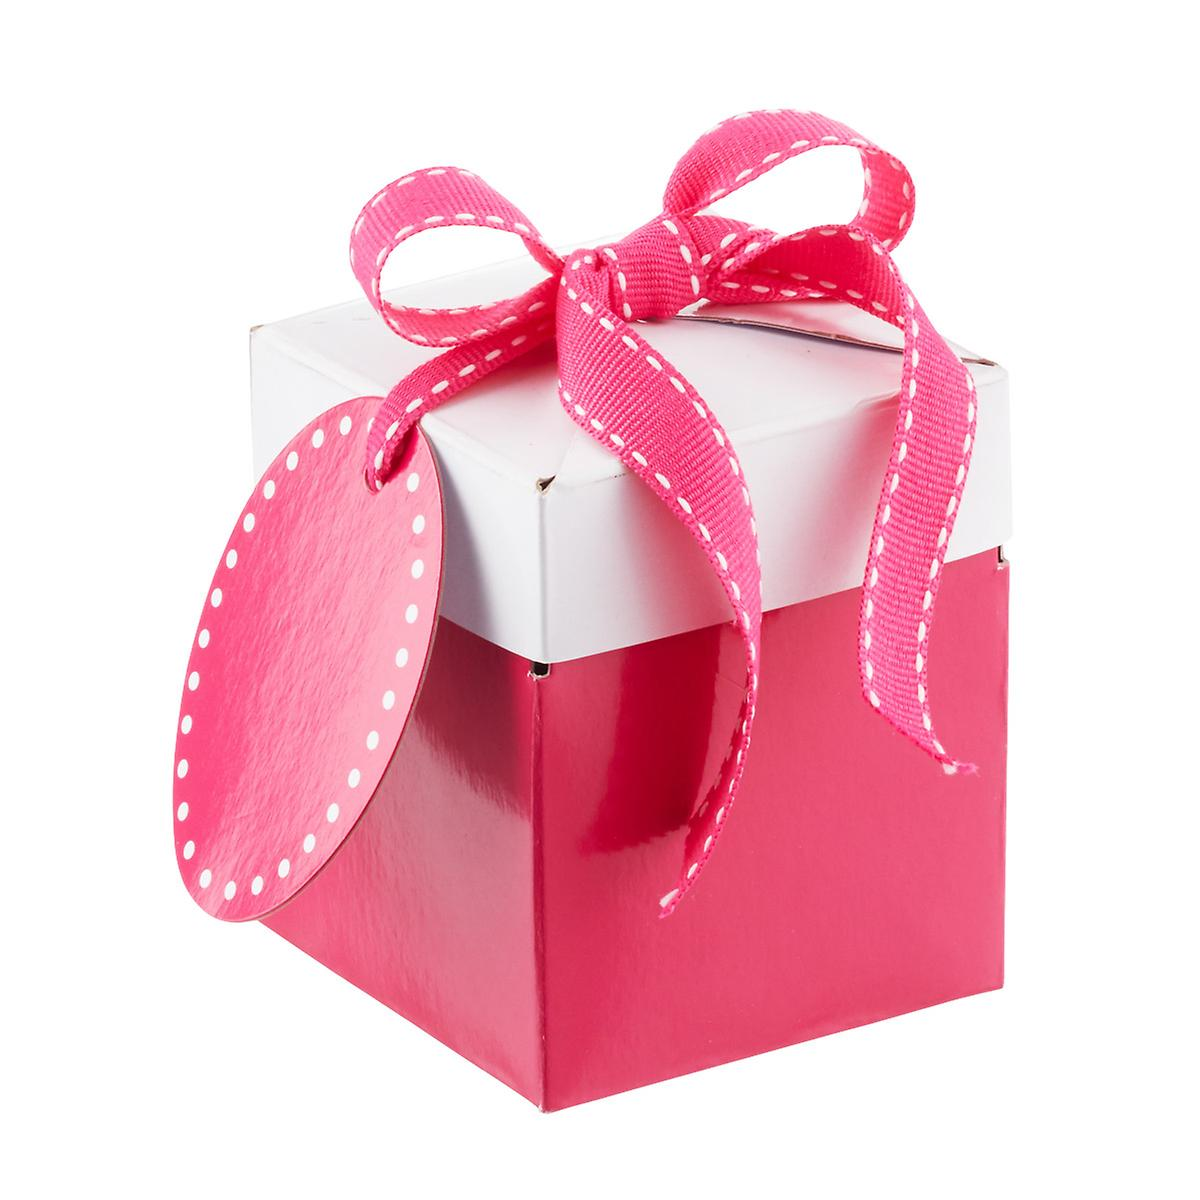 Pink Pop Up Gift Boxes The Container Store